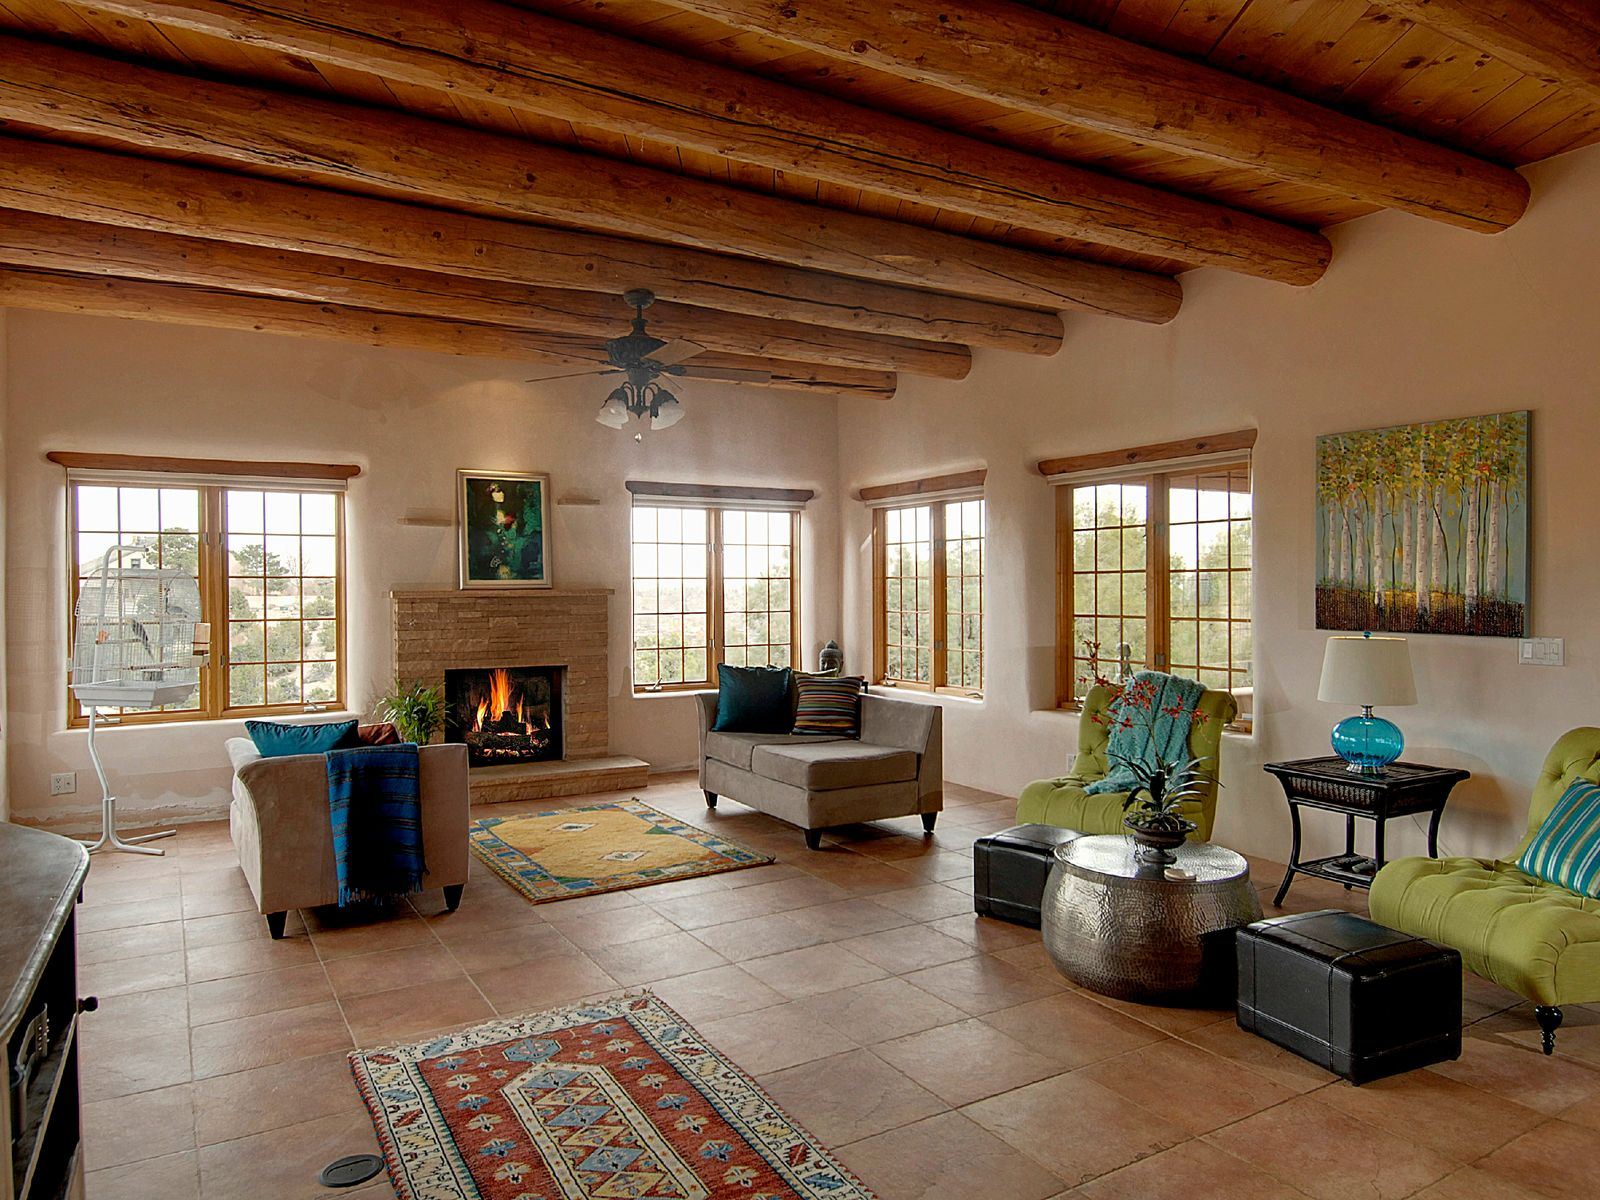 821 Camino Vistas Encantada, Santa Fe NM Single Family Home - Santa Fe Real Estate